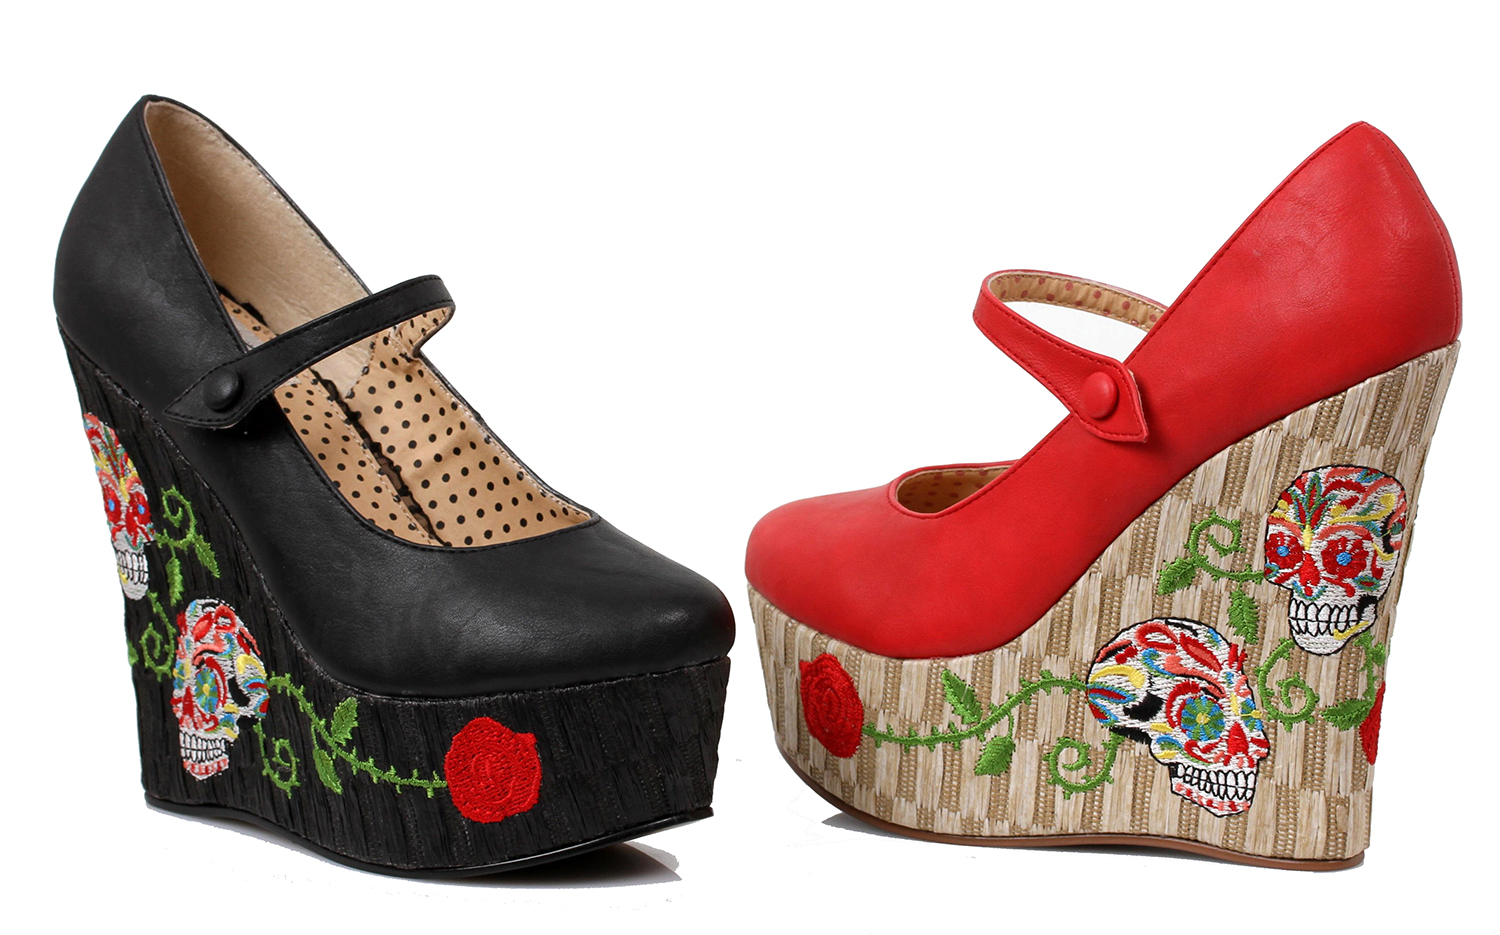 BP475 4.5 Inch Closed Toe Wedge Shoe with Skull Print by Bettie Paige